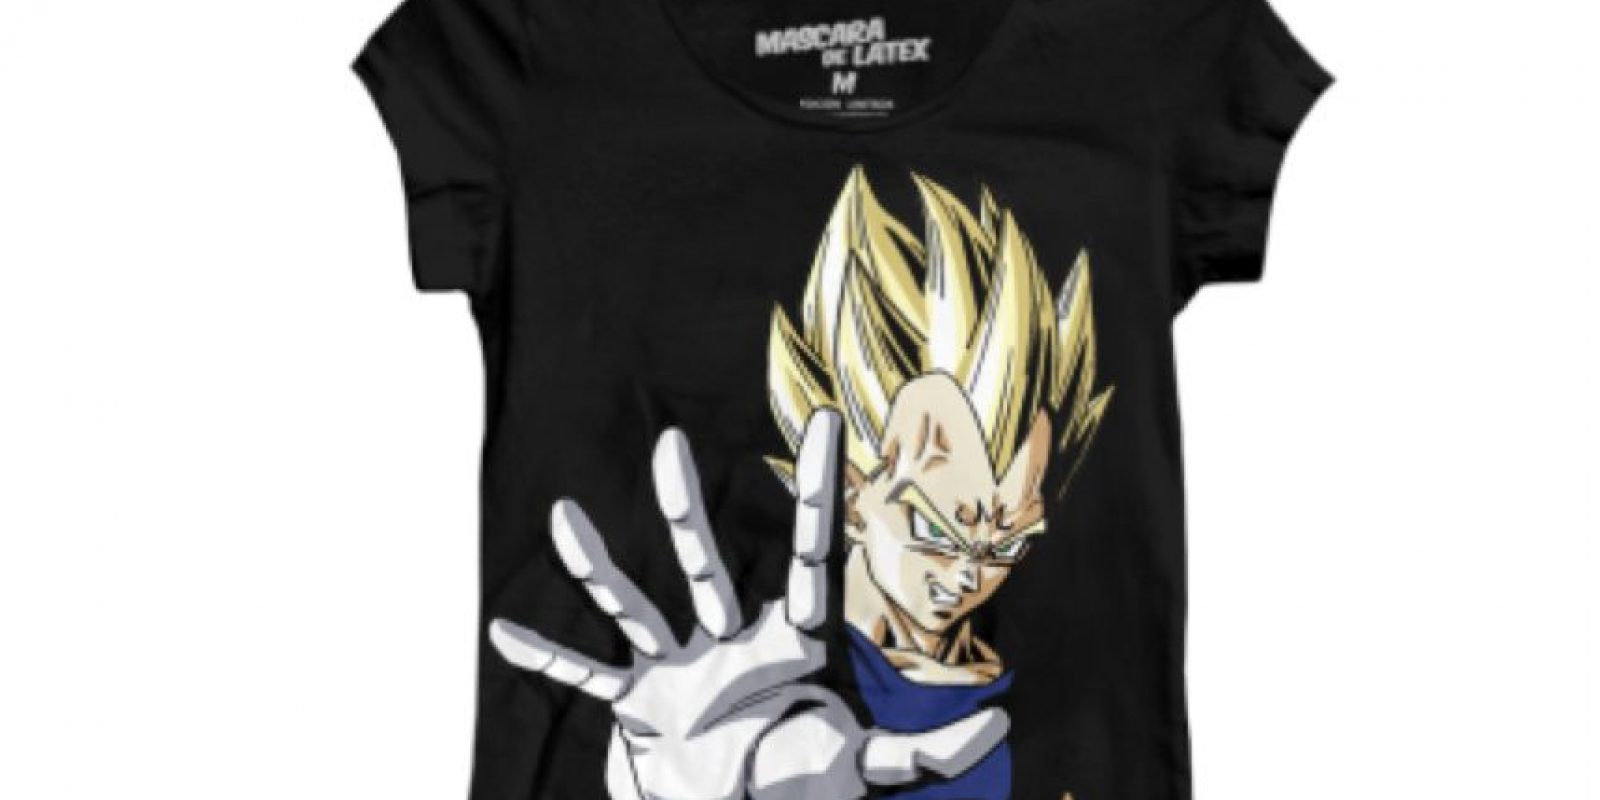 Máscara de Látex distribuye estas camisetas de Dragon Ball Z. Foto: vía Máscara de Látex